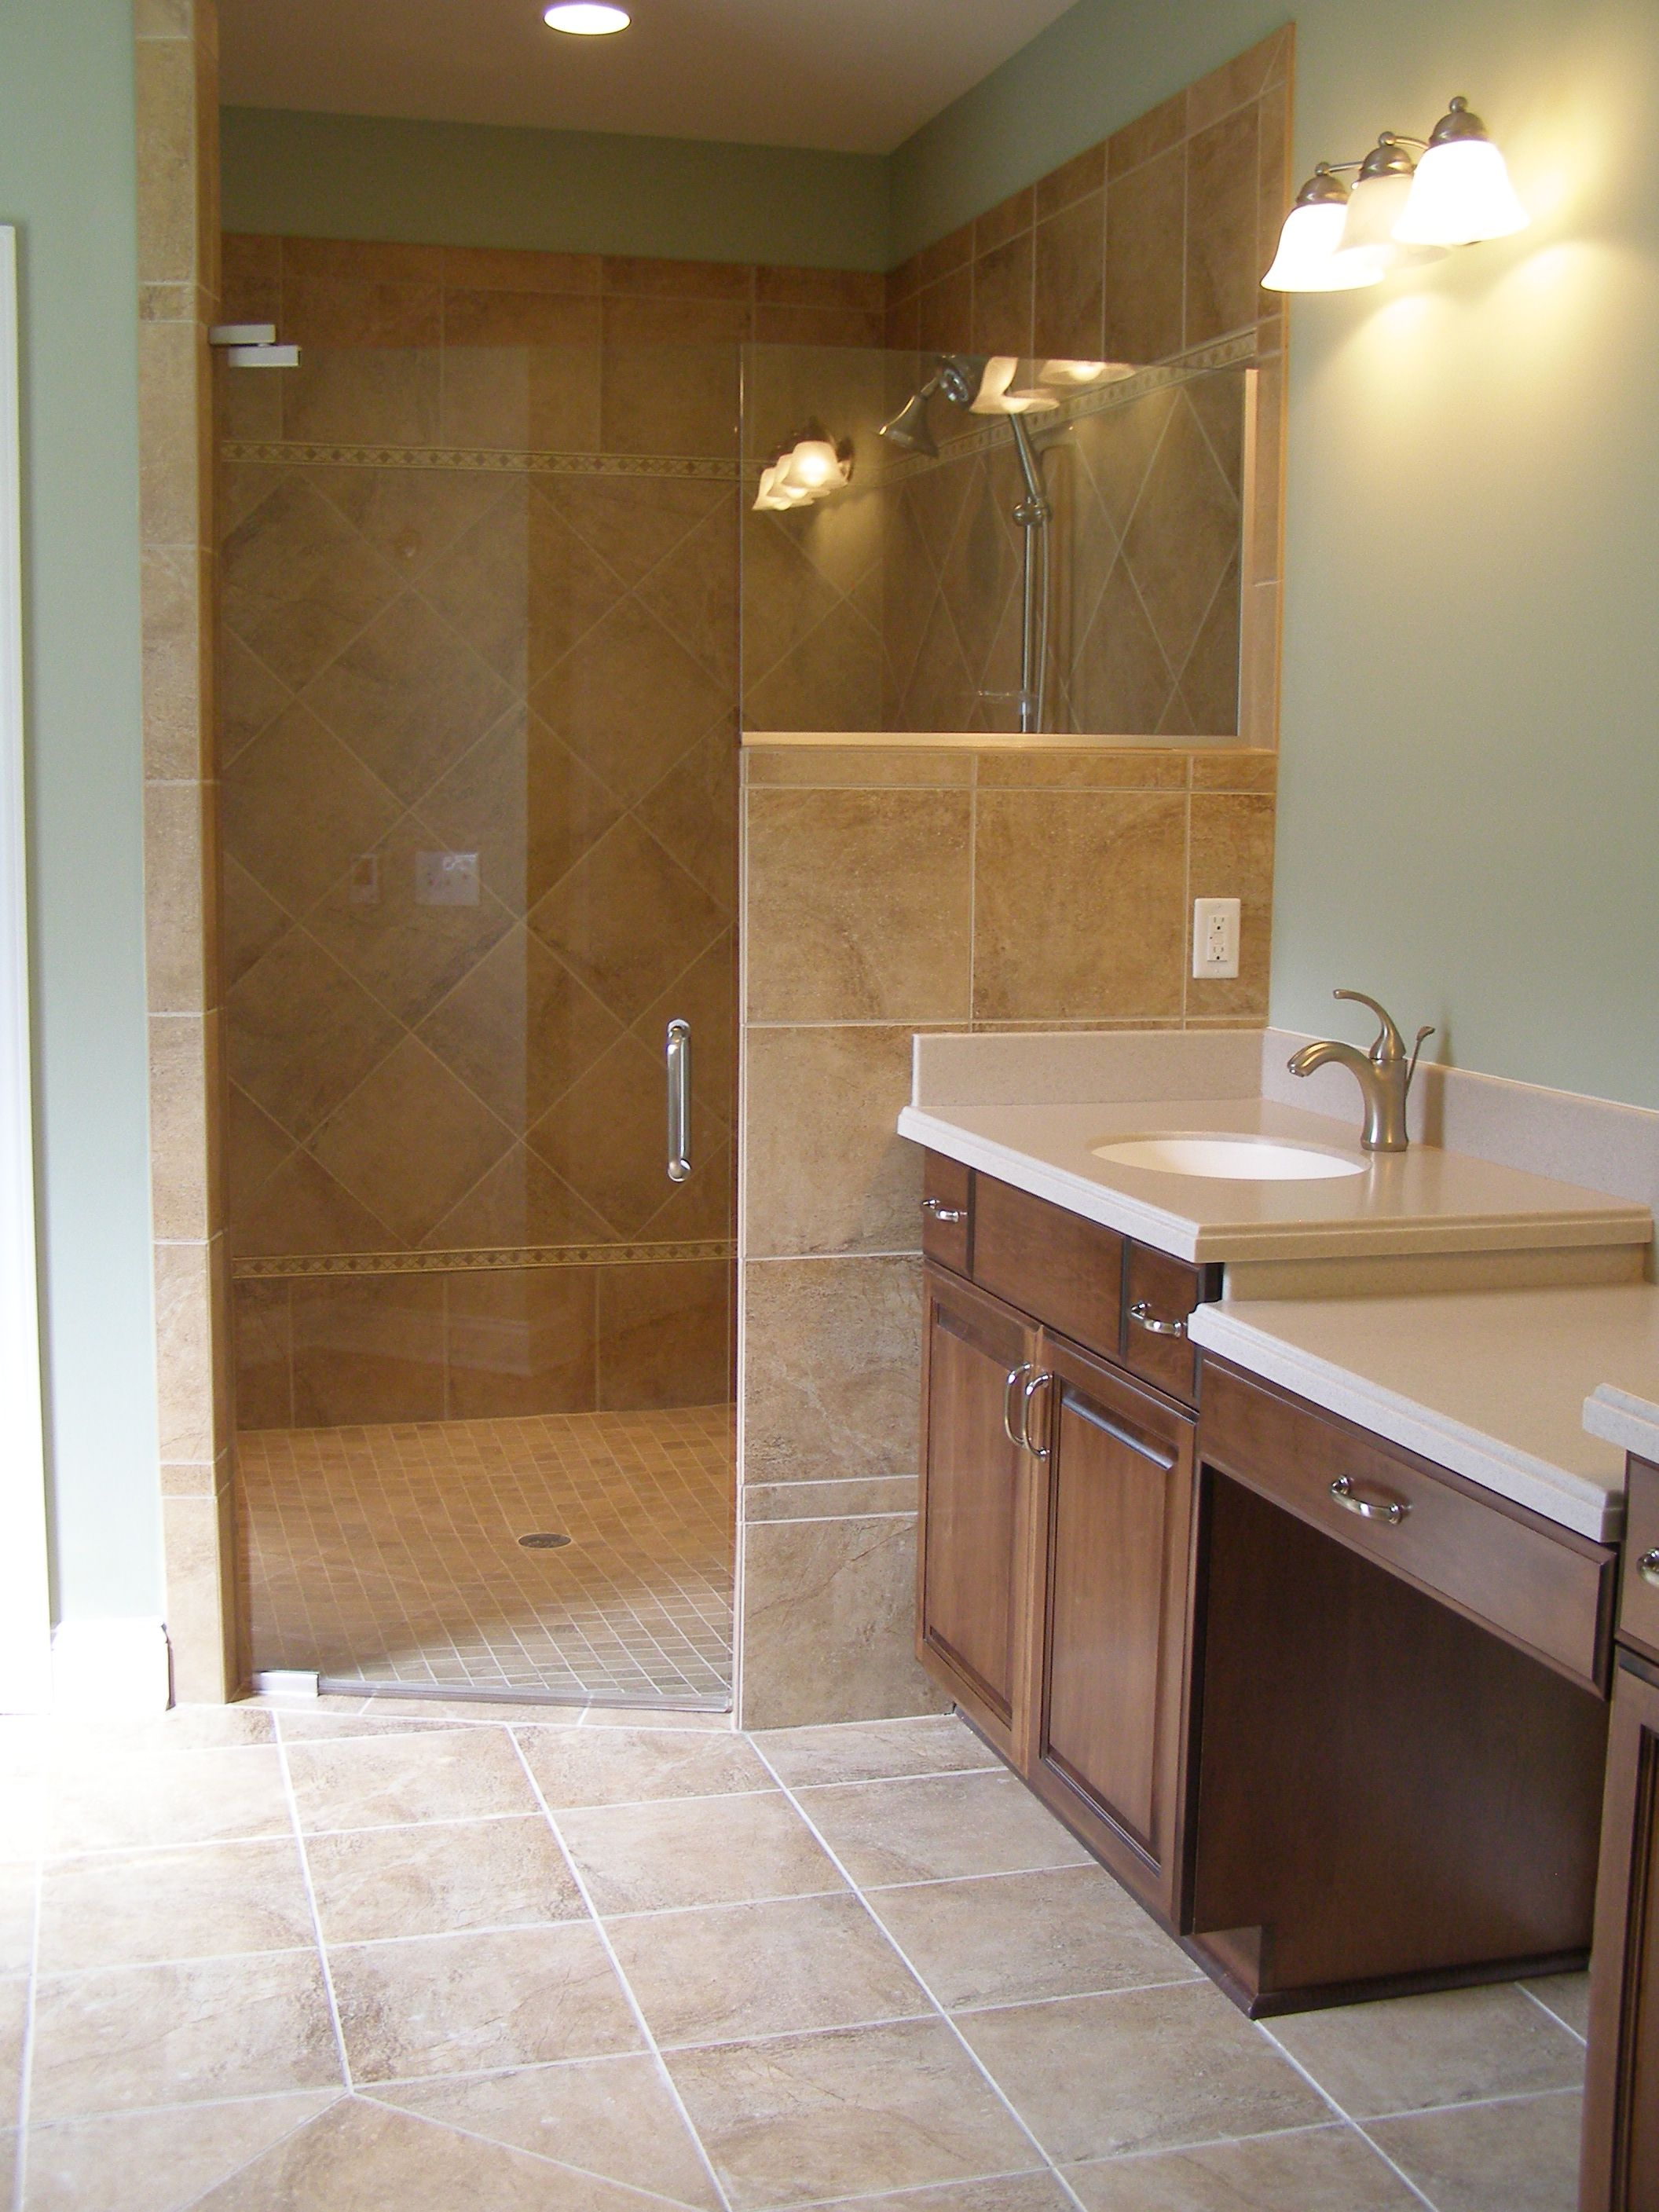 Brunswick County North Carolina Showers Without Doors Shower Remodel Small Shower Remodel